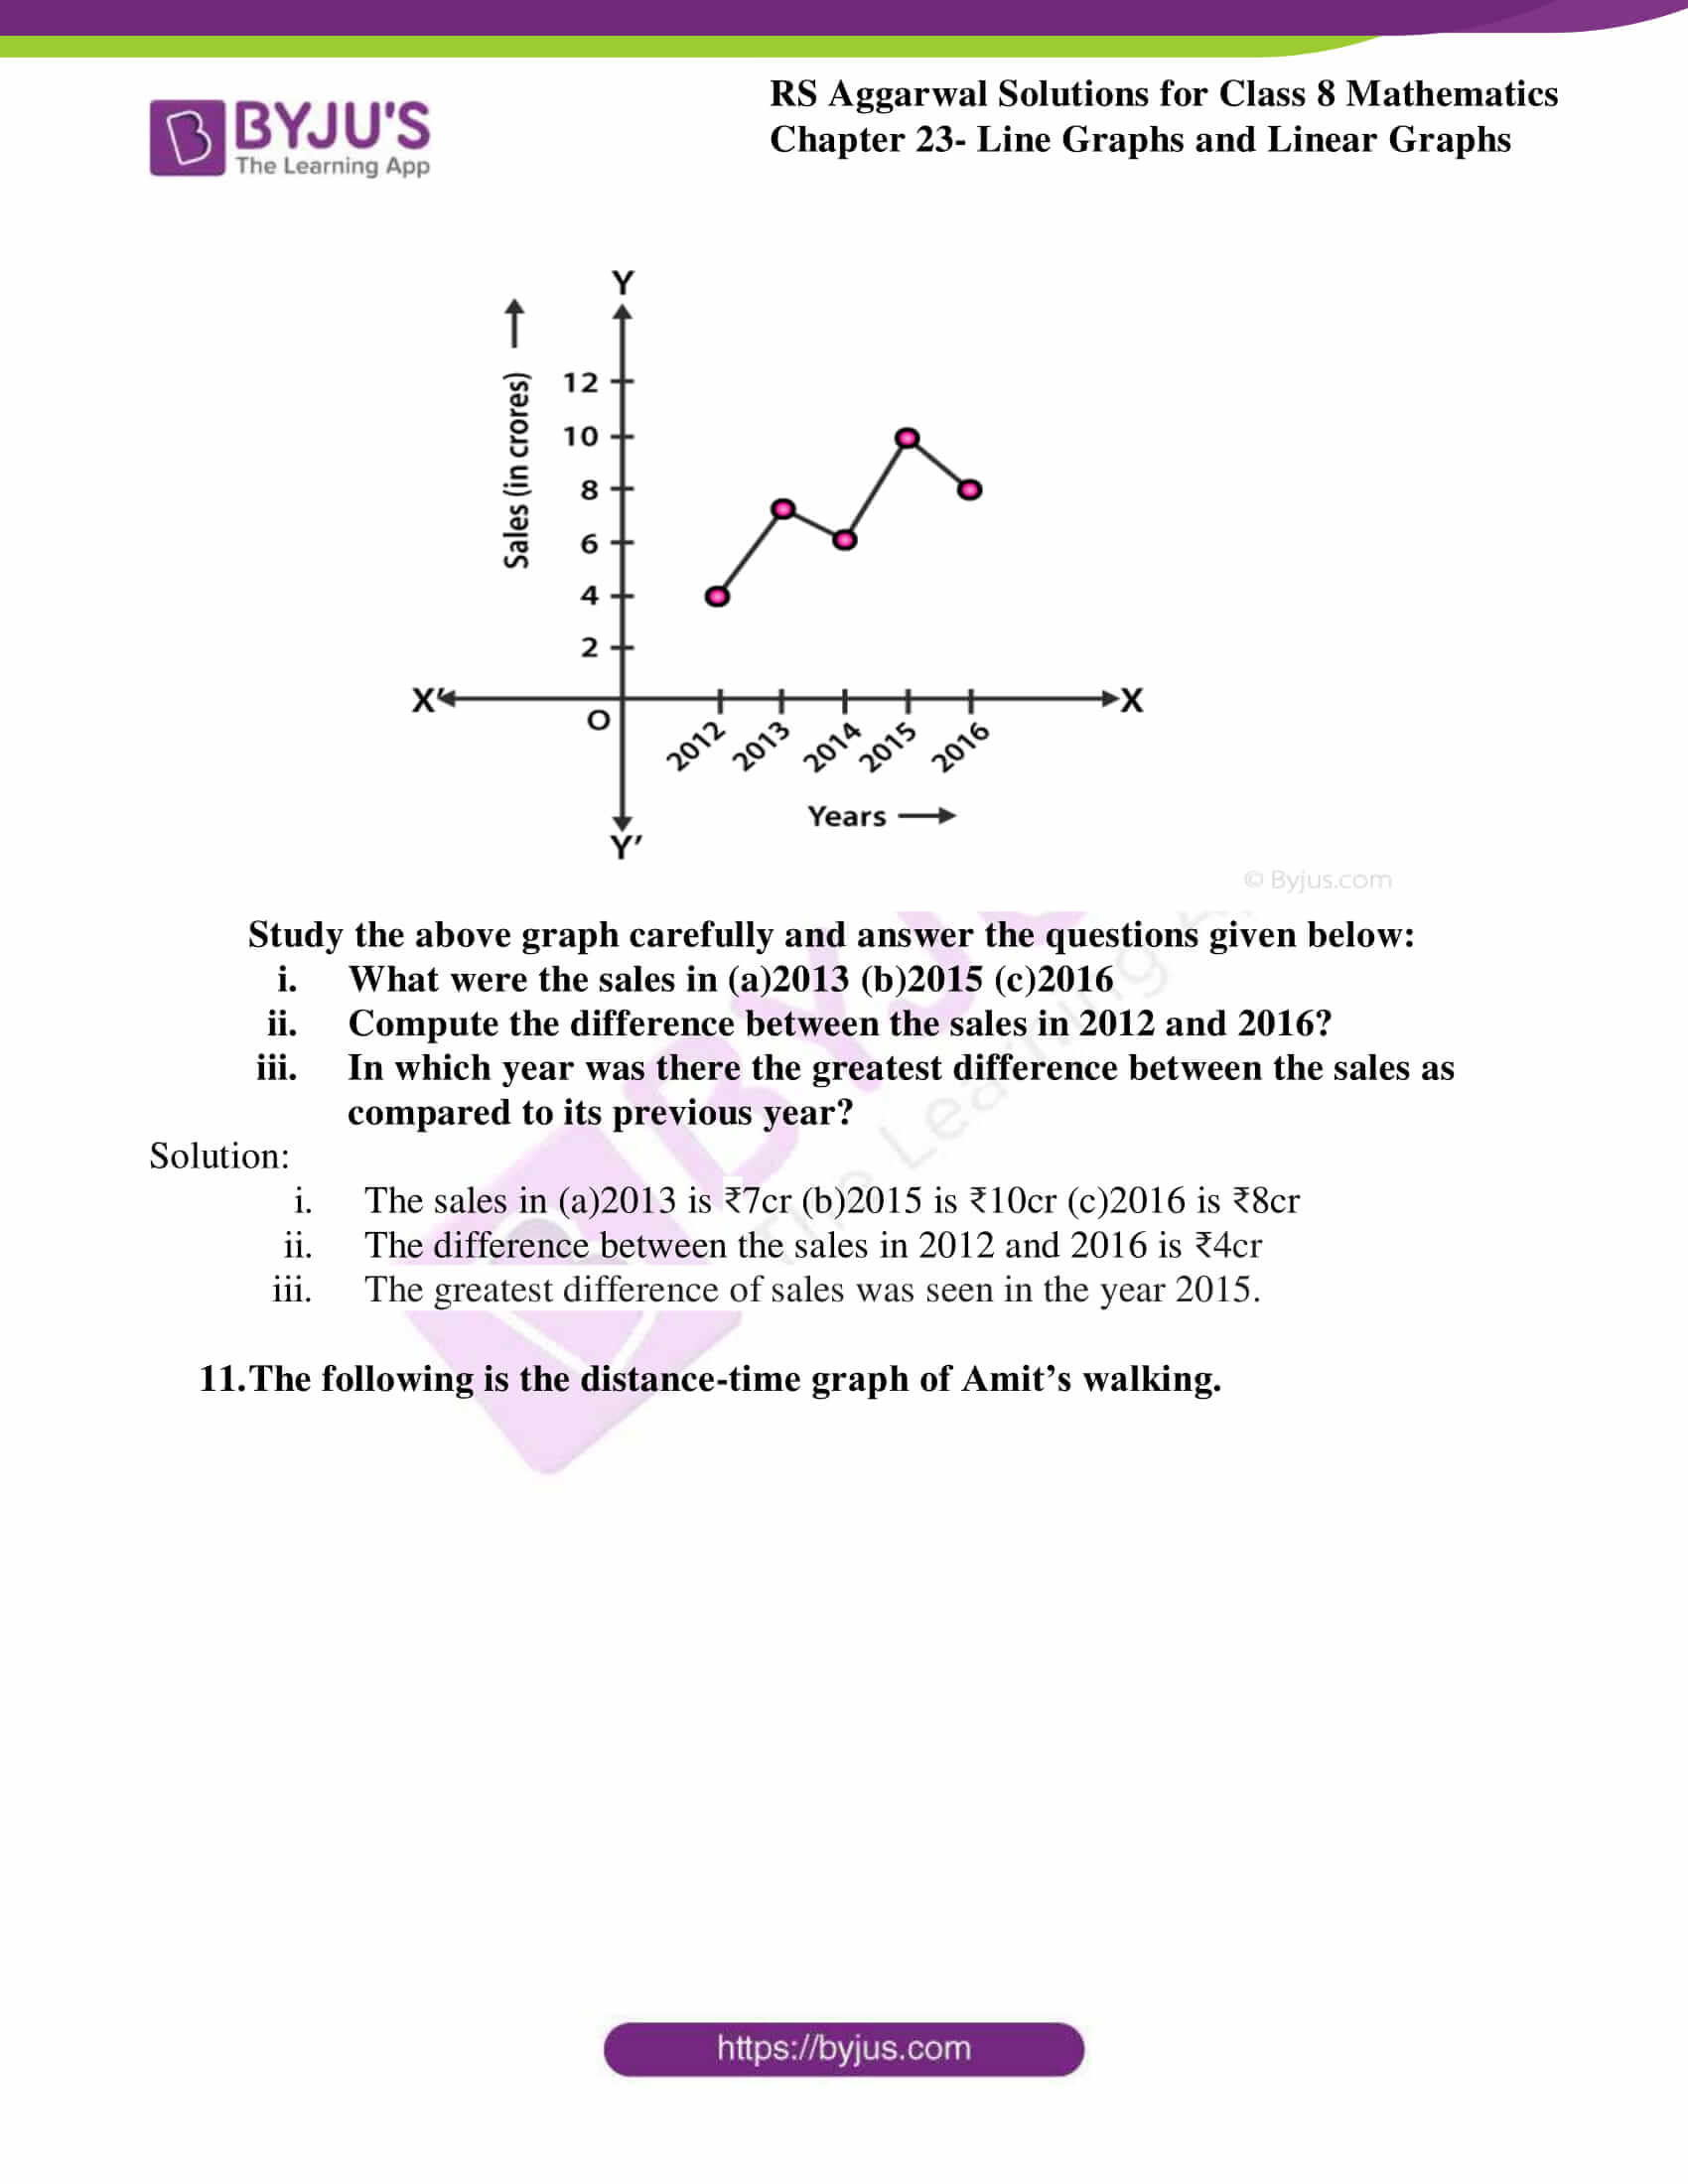 rs aggarwal solutions class 8 maths chapter 23